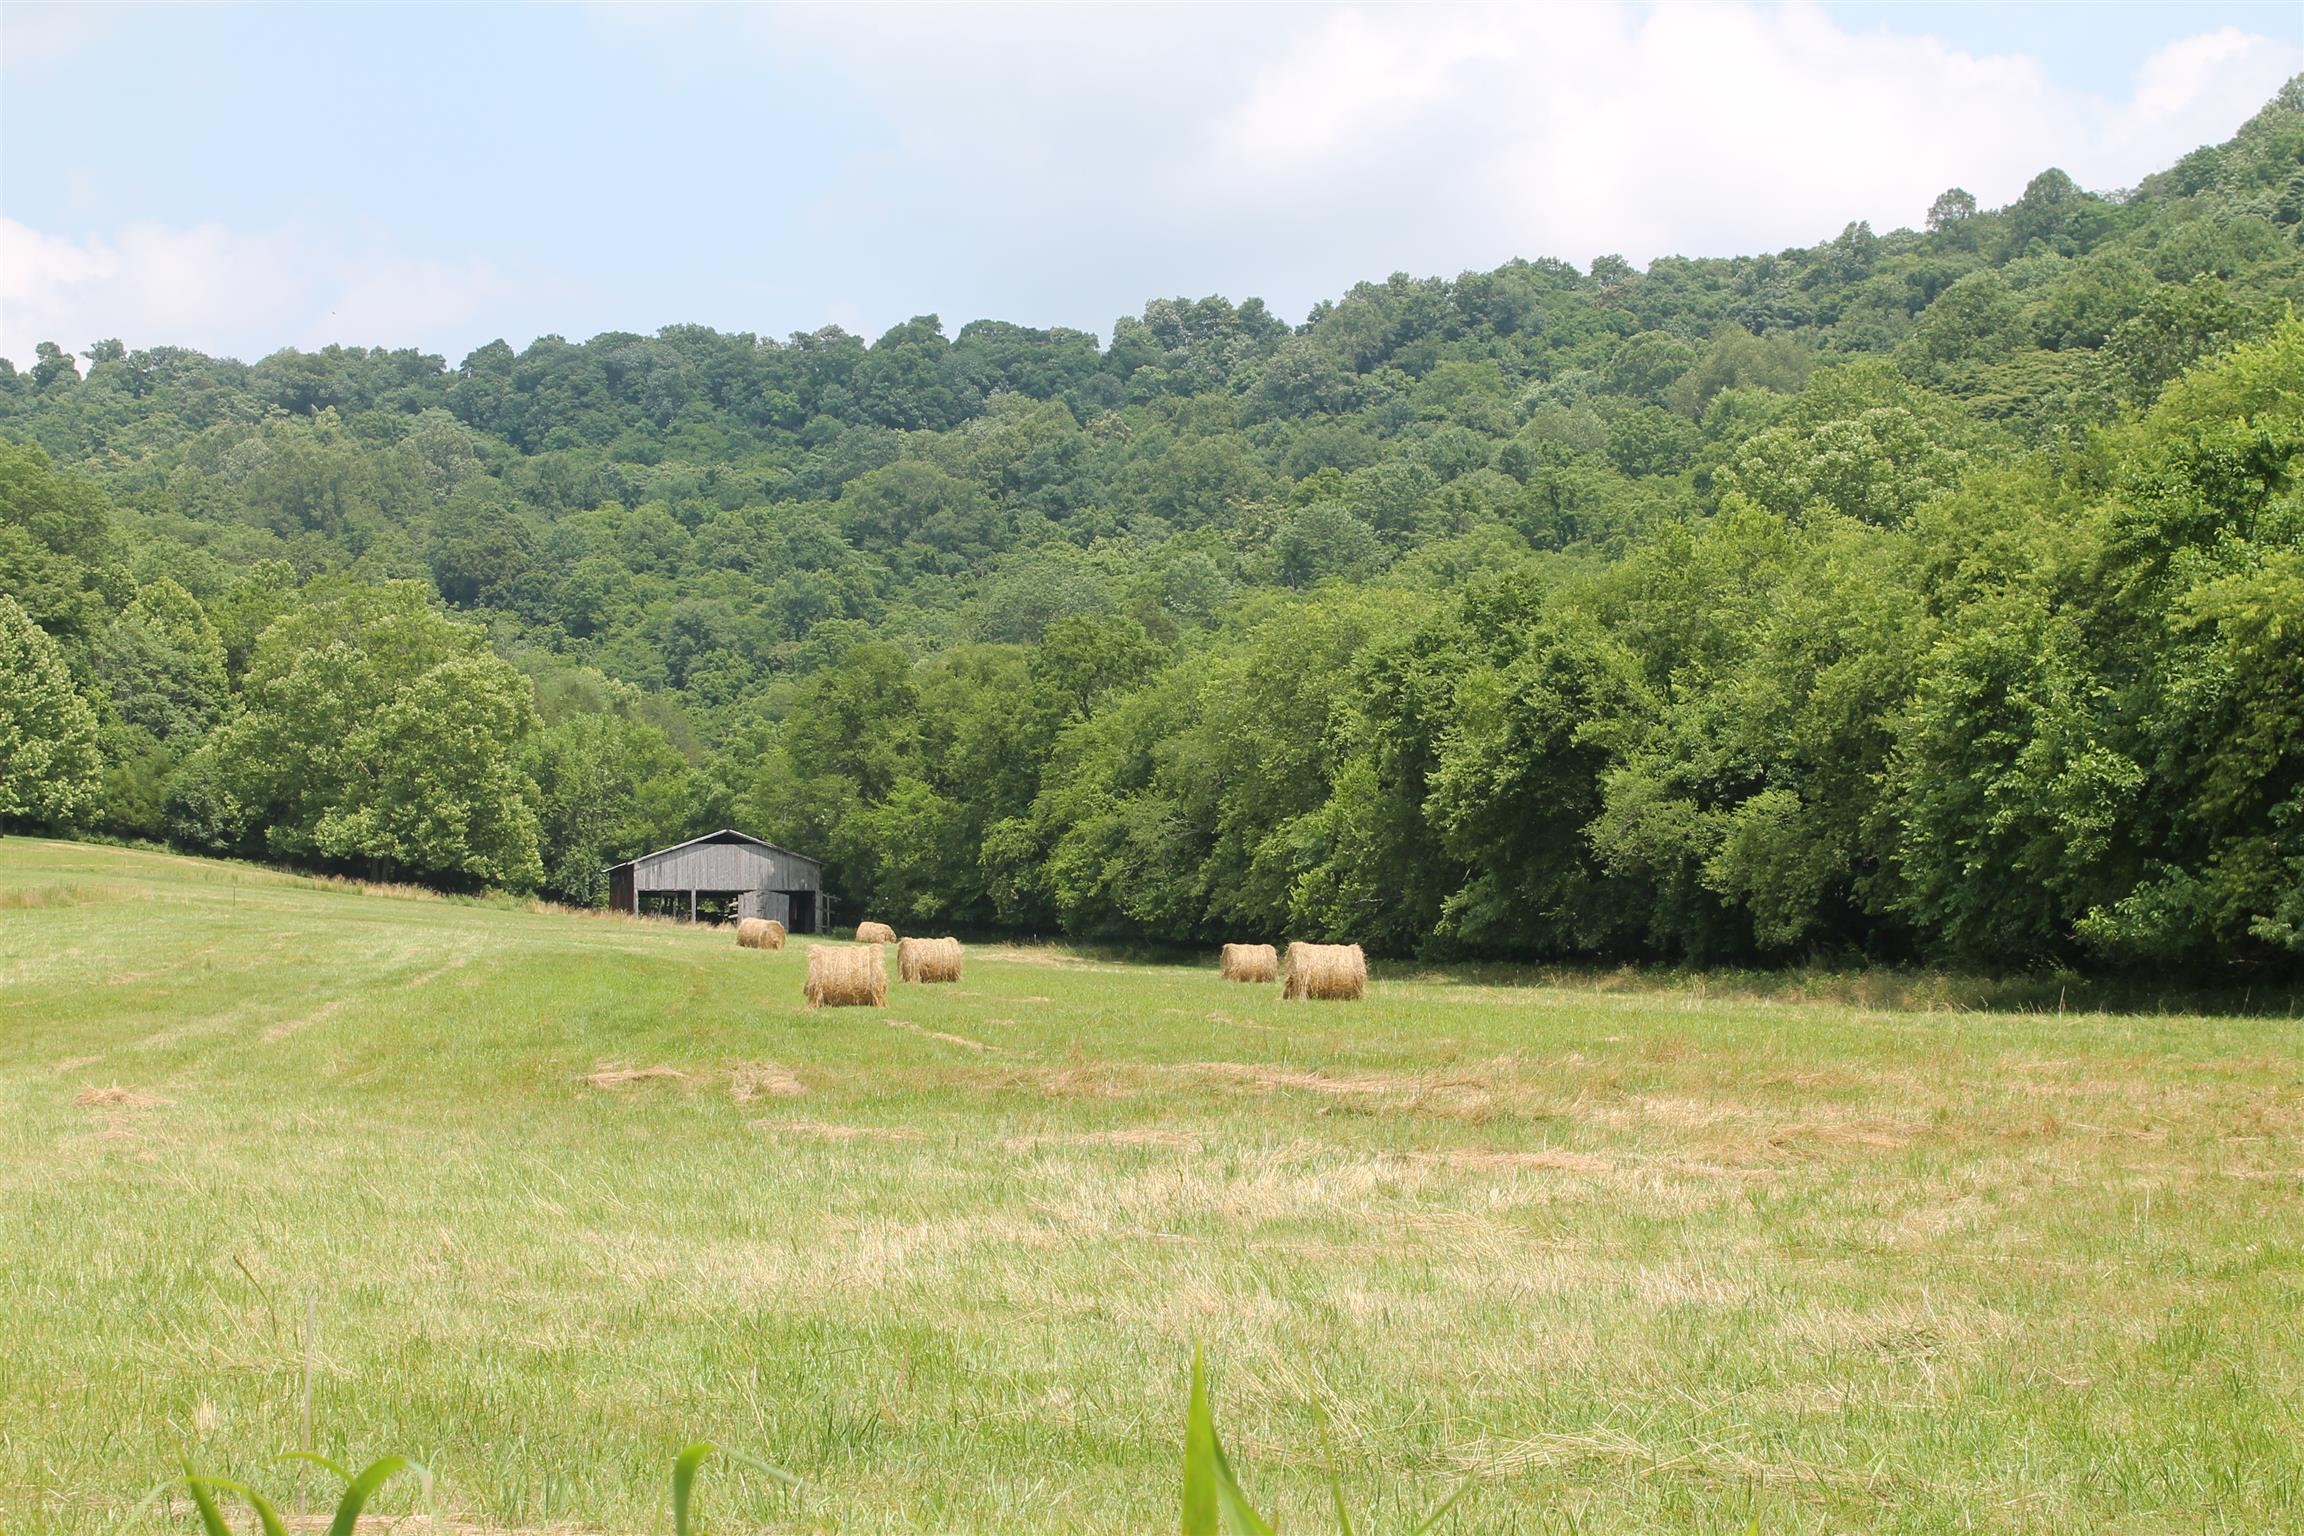 0 Beasley Hollow Ln, Carthage, TN 37030 - Carthage, TN real estate listing